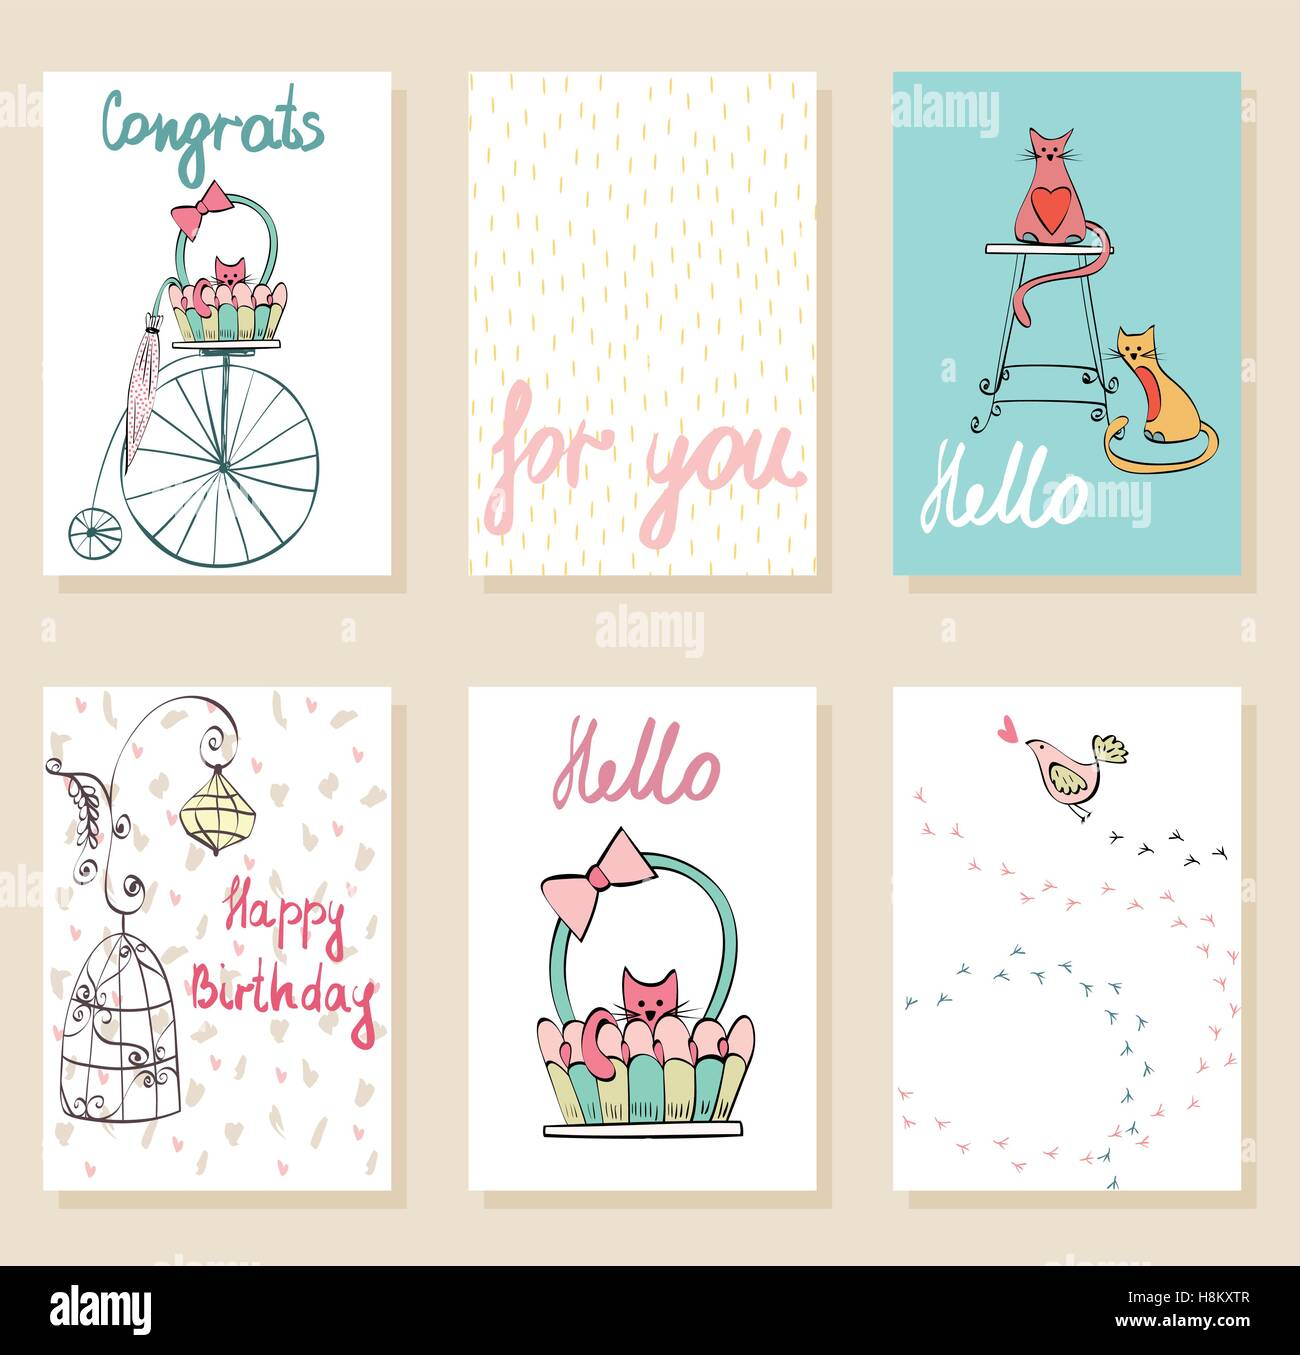 Vector greeting card - Stock Image